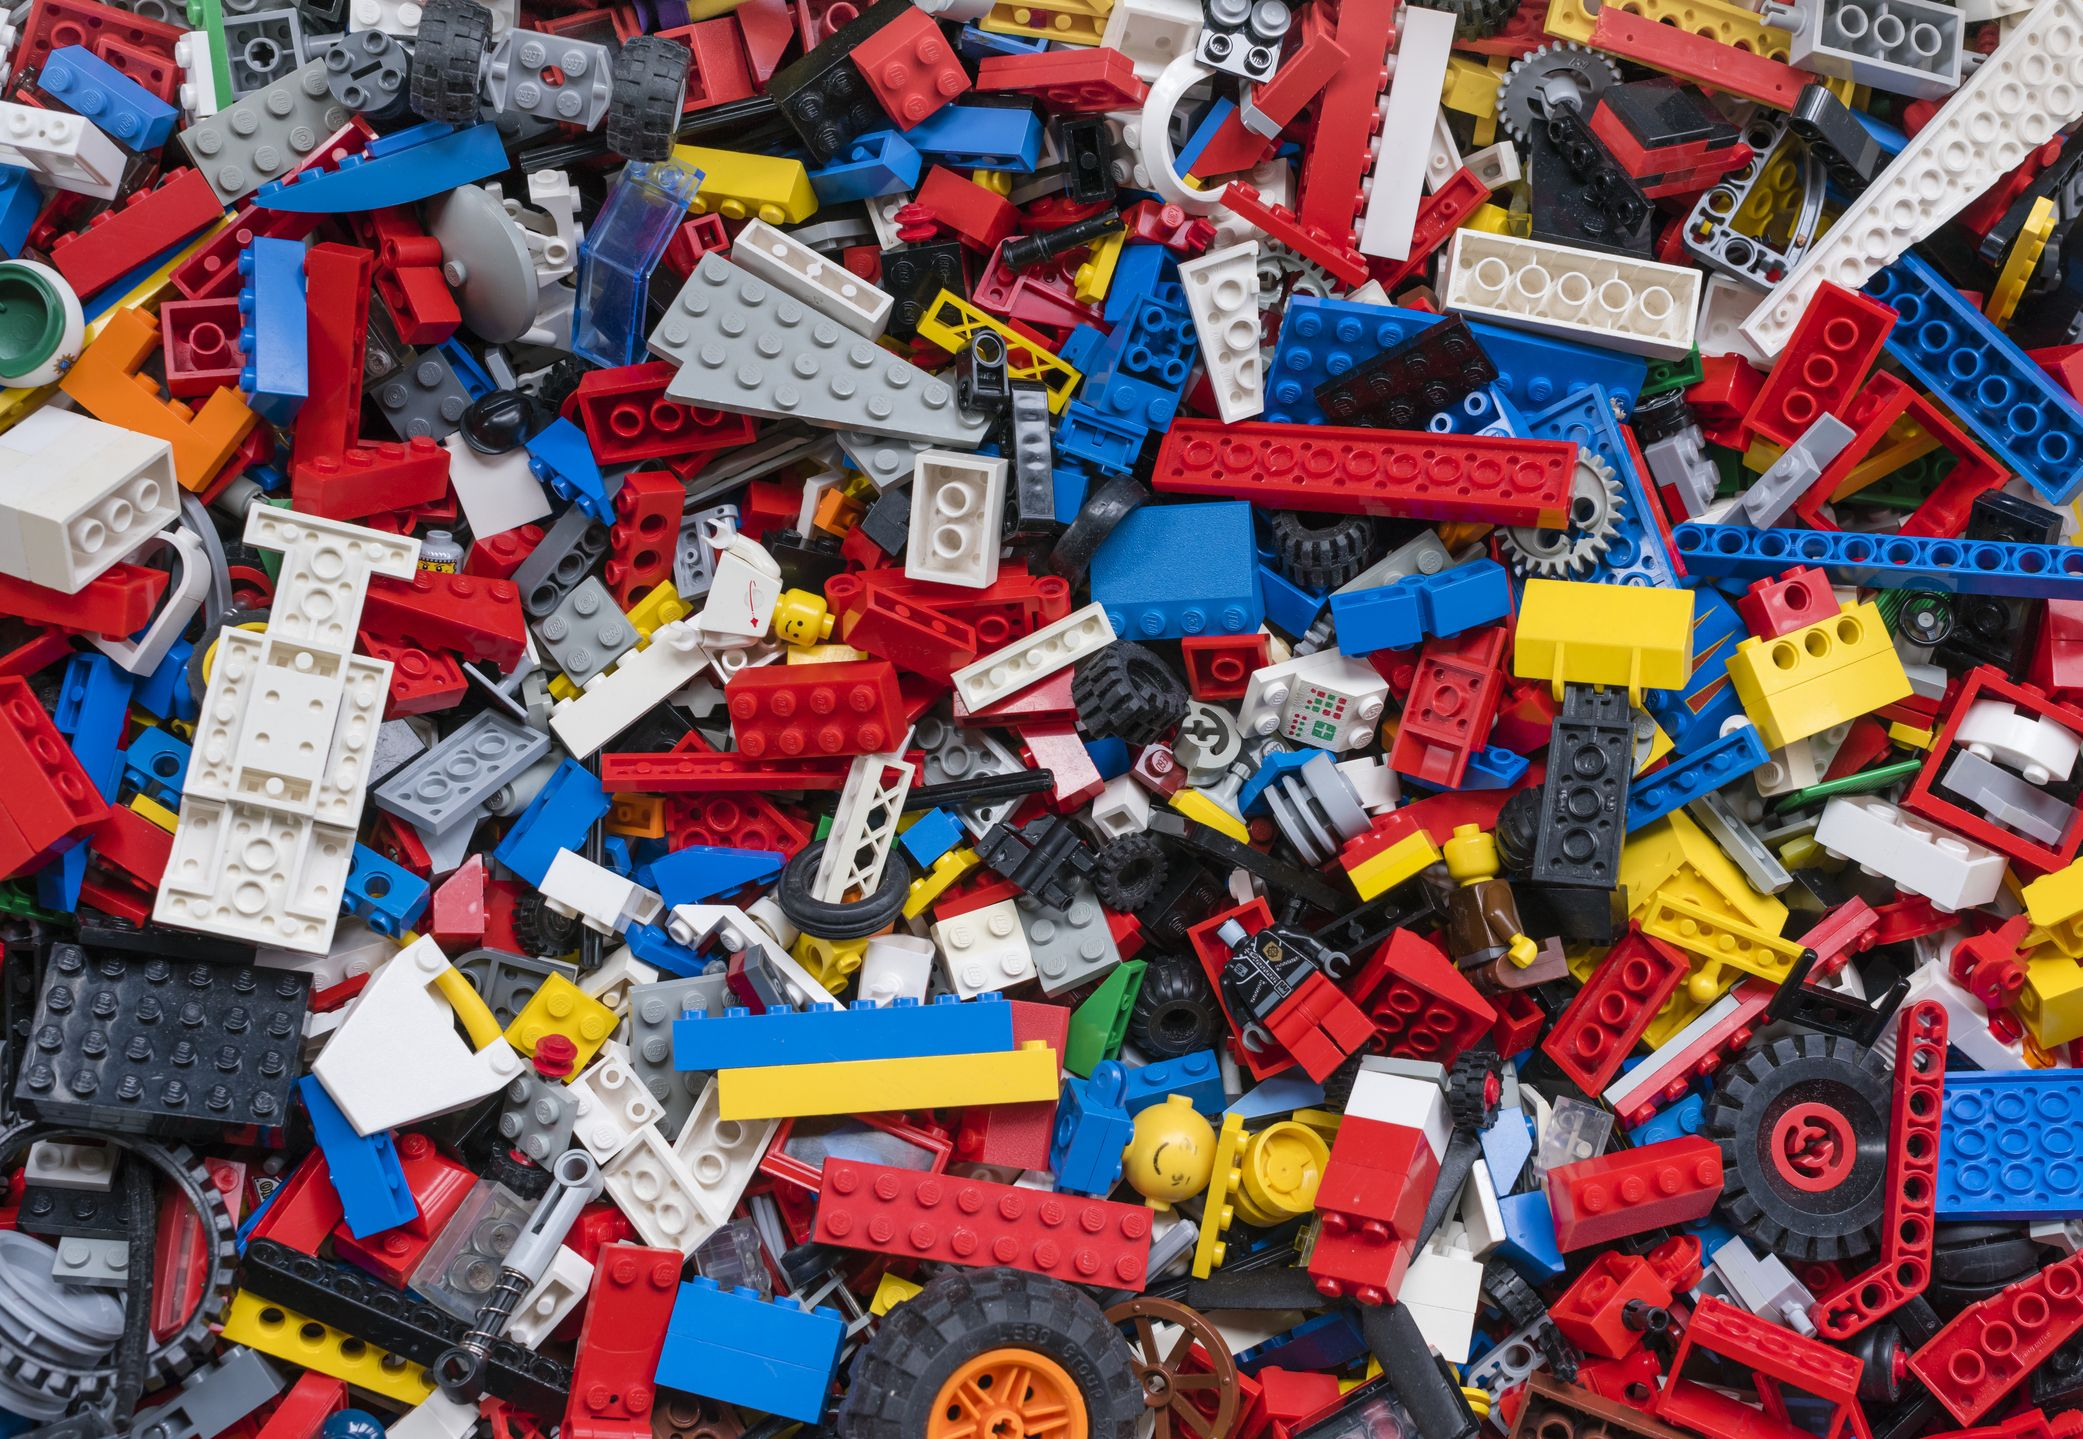 Cluttered Pile Of Many Colourful Lego Bricks